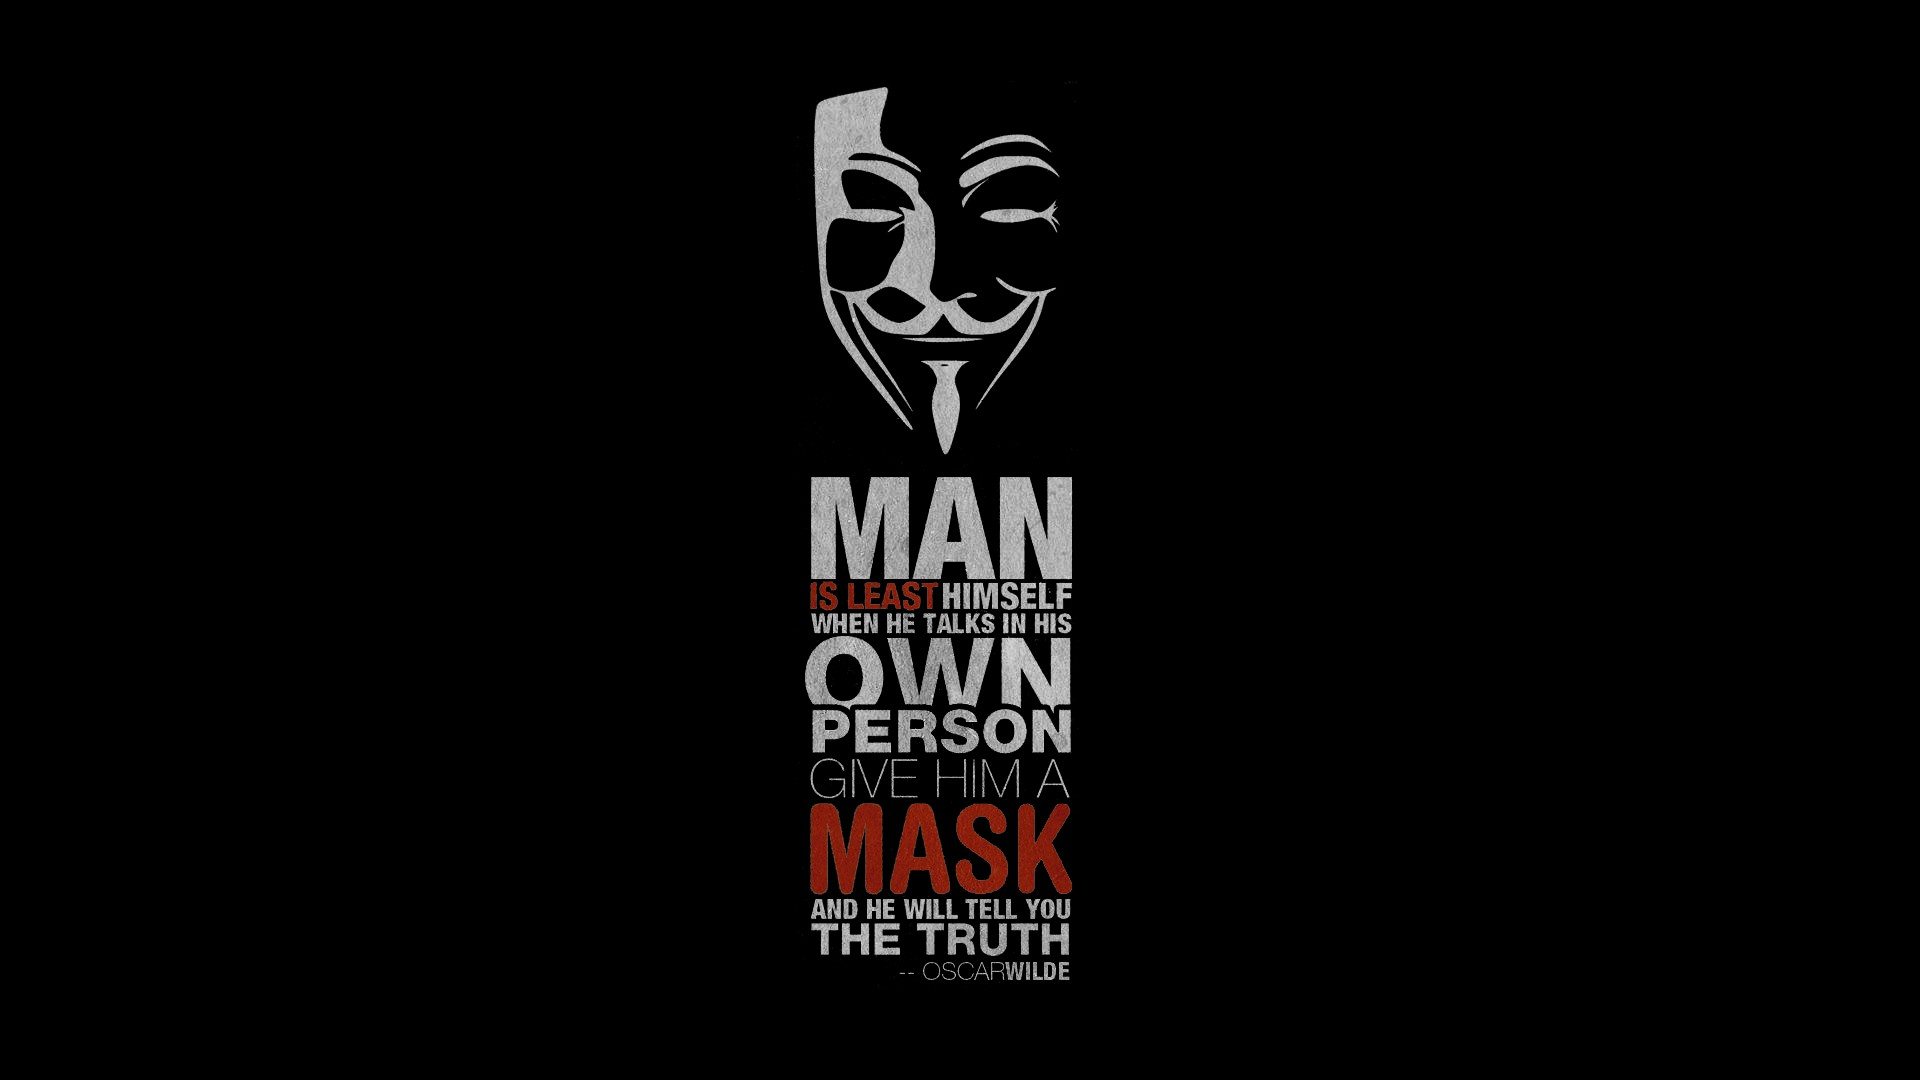 Anonymous hd wallpaper 1920x1080 wallpapersafari for Planners anonymous